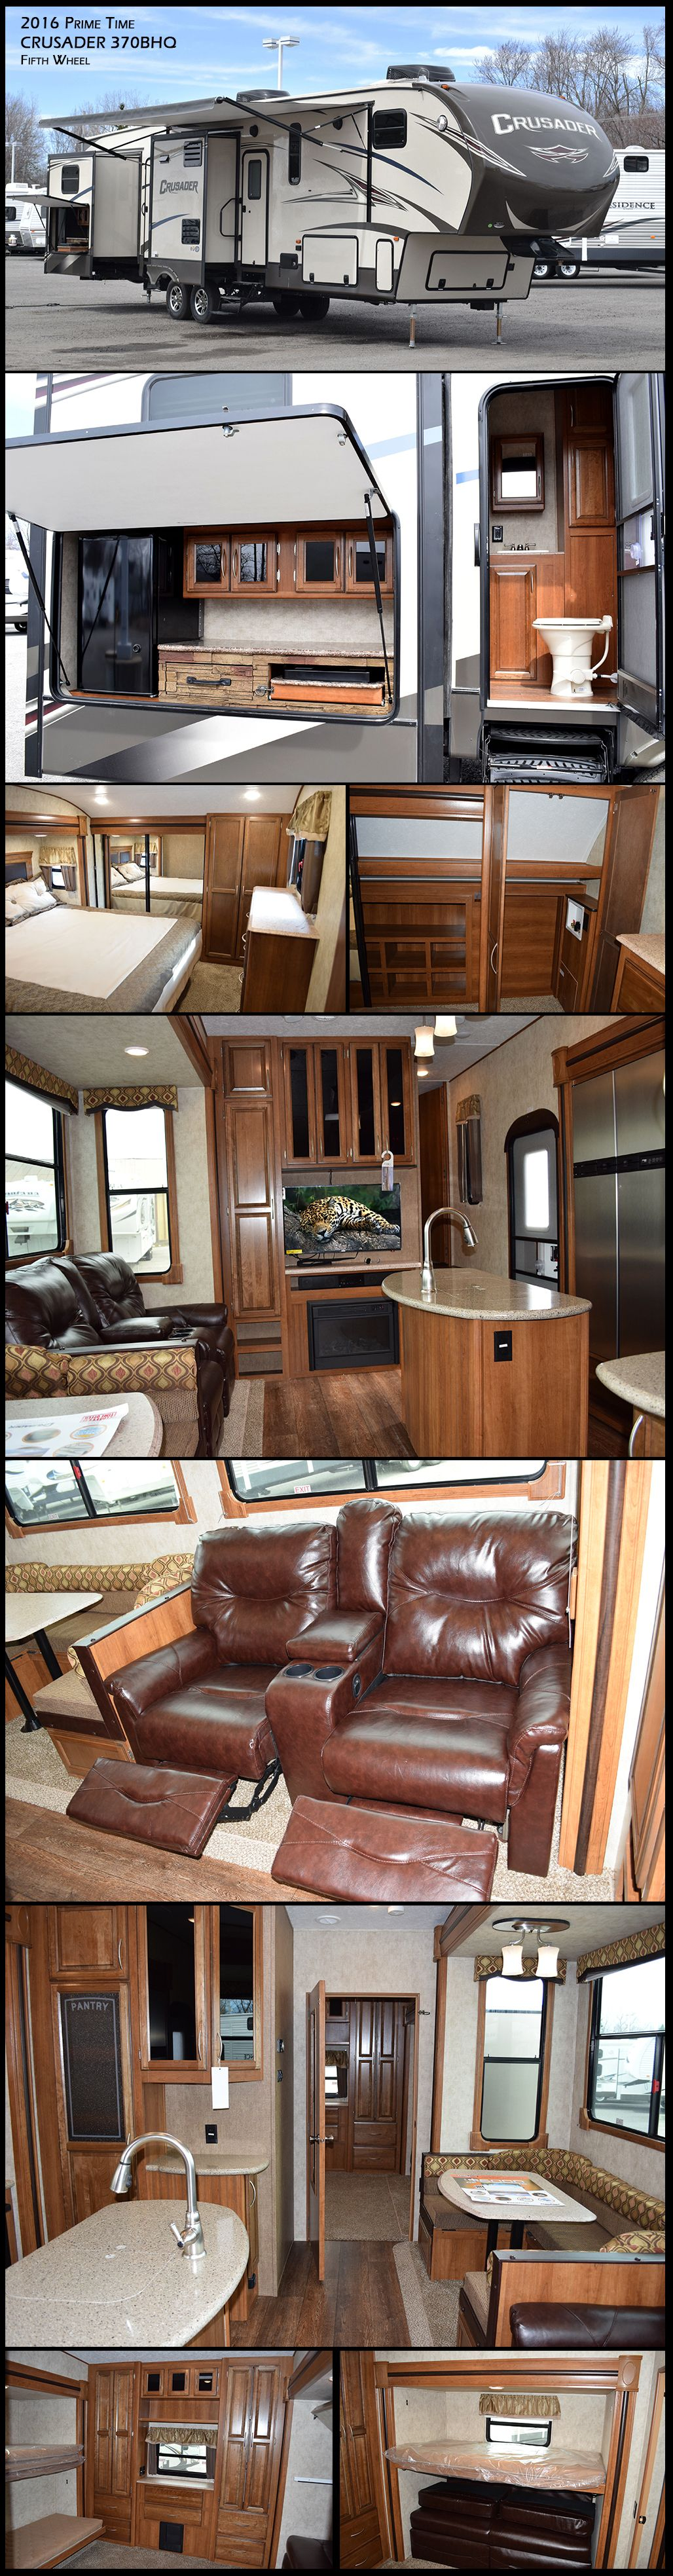 floor plan coachmen chaparral 360ibl fifth wheel bunk house floor plan coachmen chaparral 360ibl fifth wheel bunk house google search camping pinterest wheels rv and house